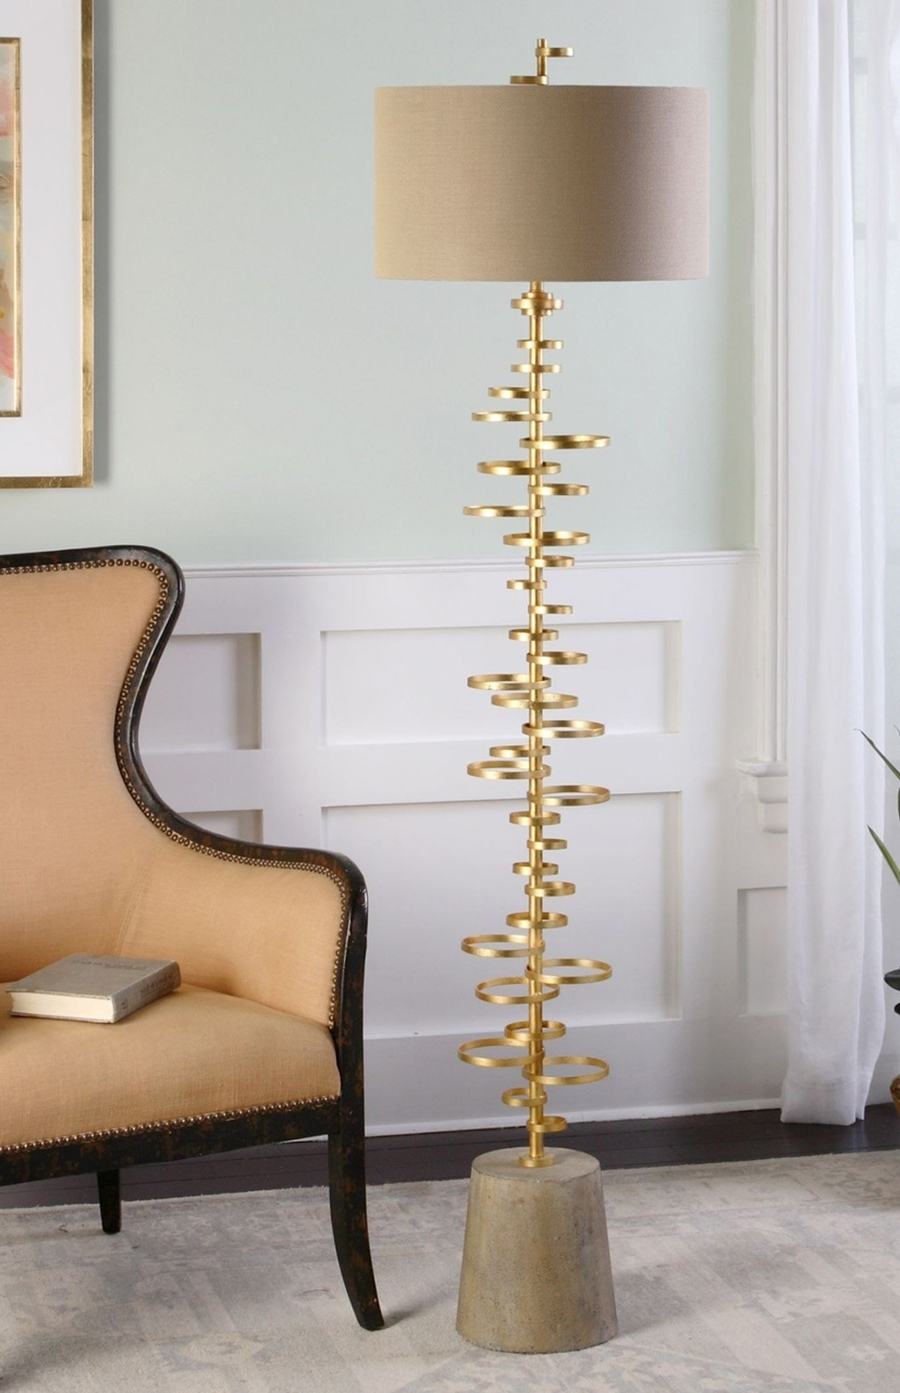 Lamp : Modernloor Lampsor Living Room Wayfair With Table Tray Gold Pertaining To Latest Wayfair Living Room Table Lamps (View 14 of 20)